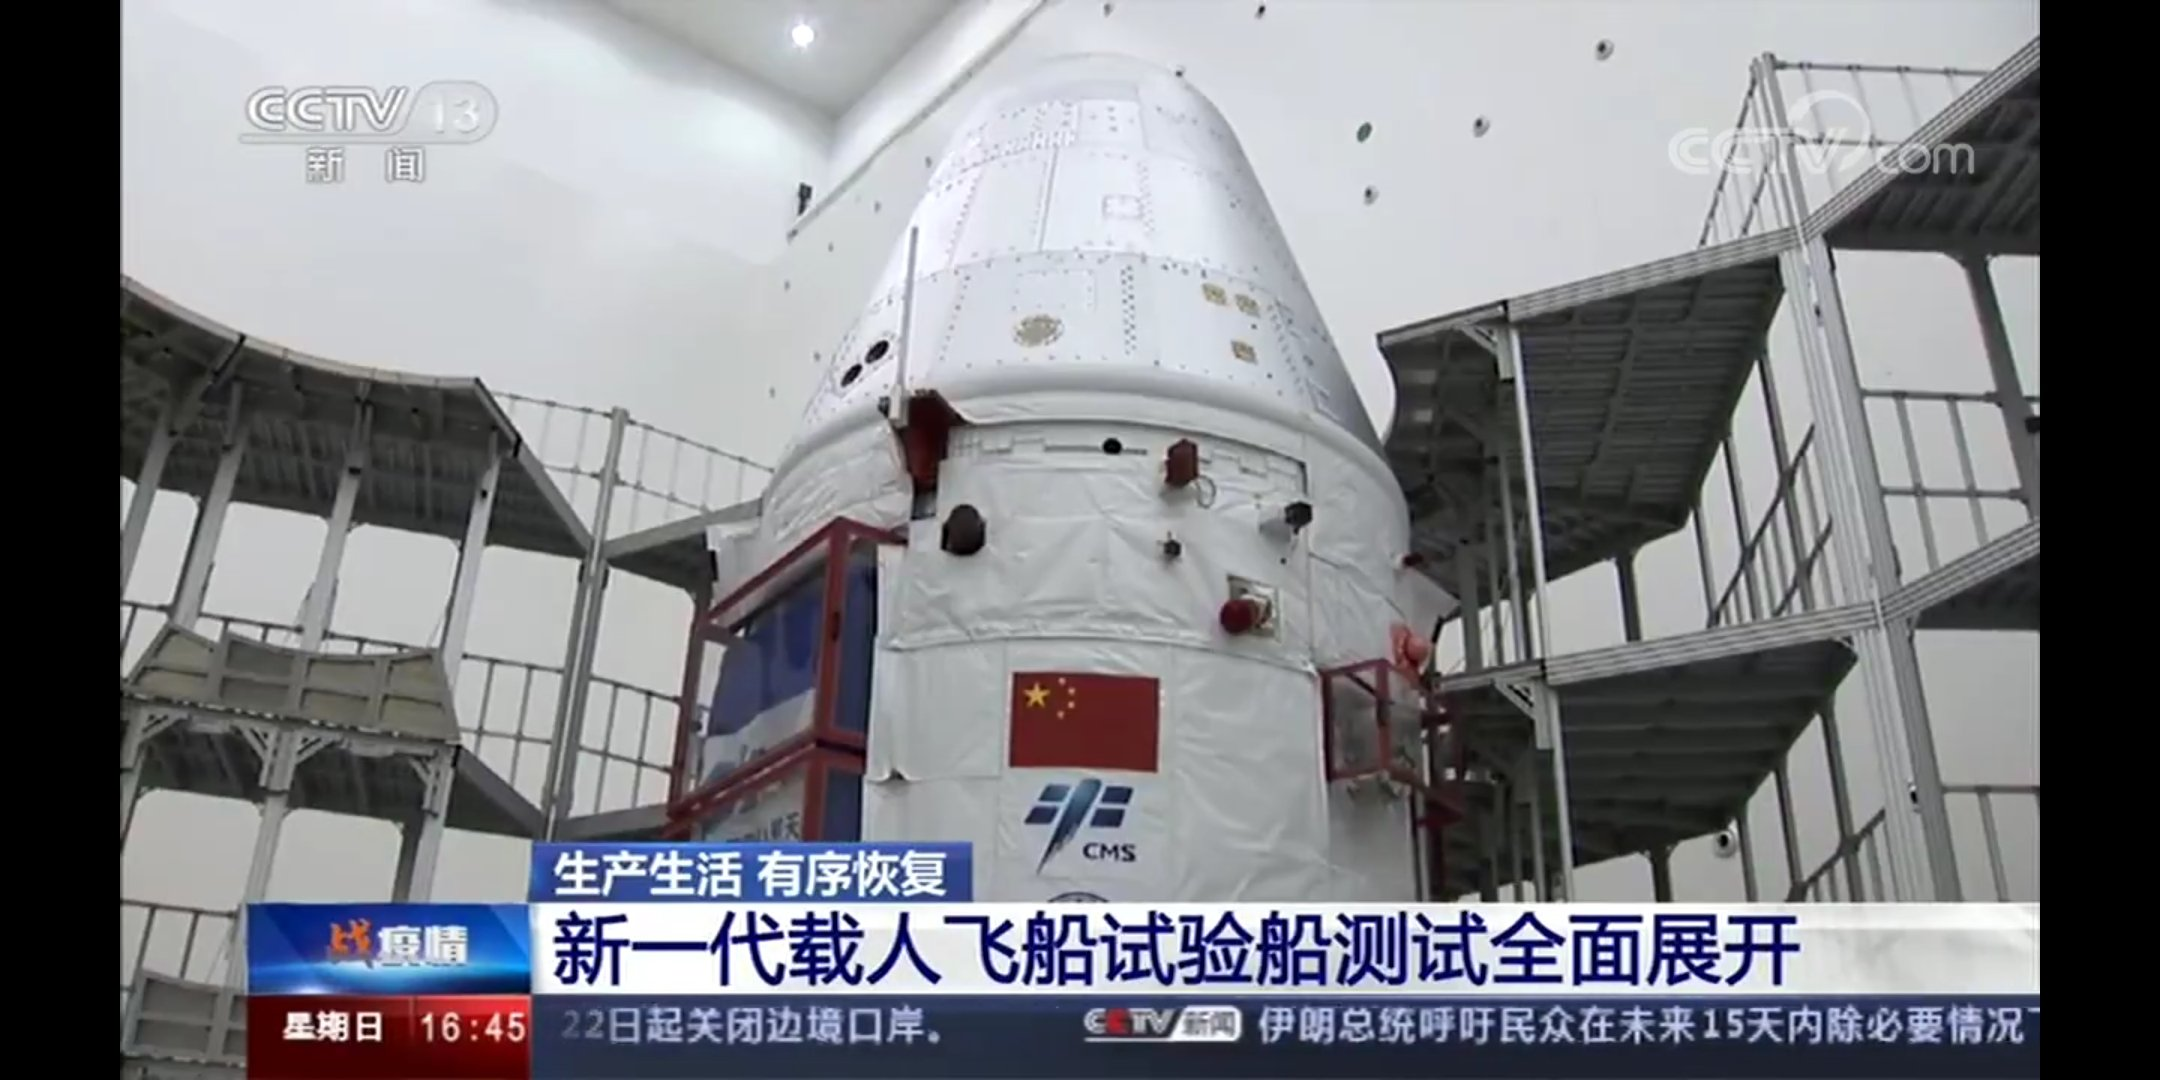 2020-china-shows-new-spacecraft.jpg